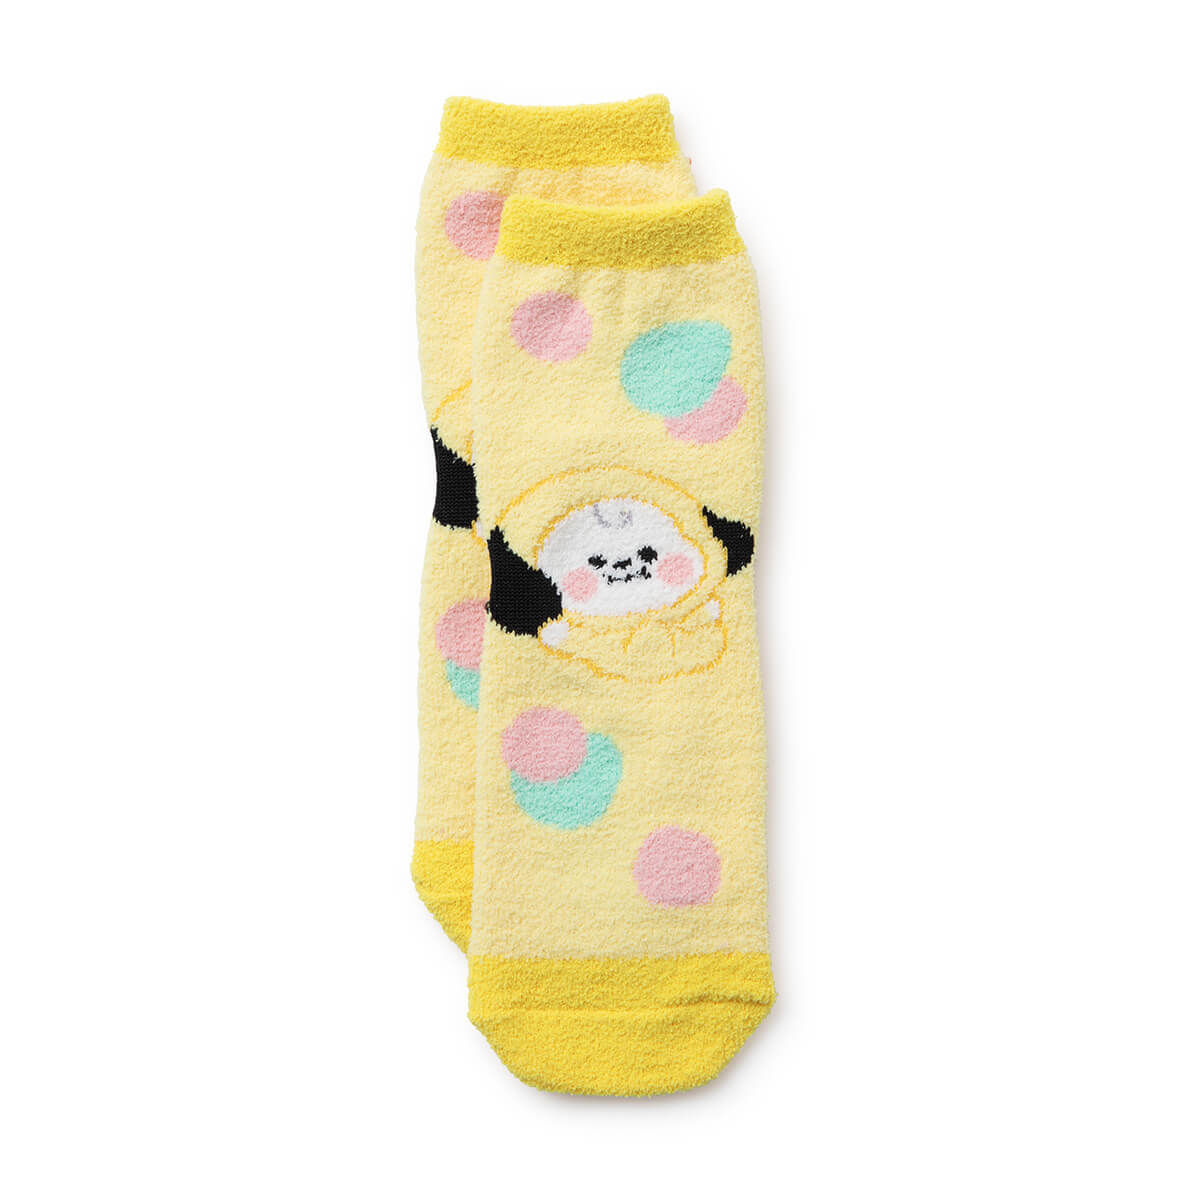 BT21 CHIMMY Baby Adult Sleep Socks